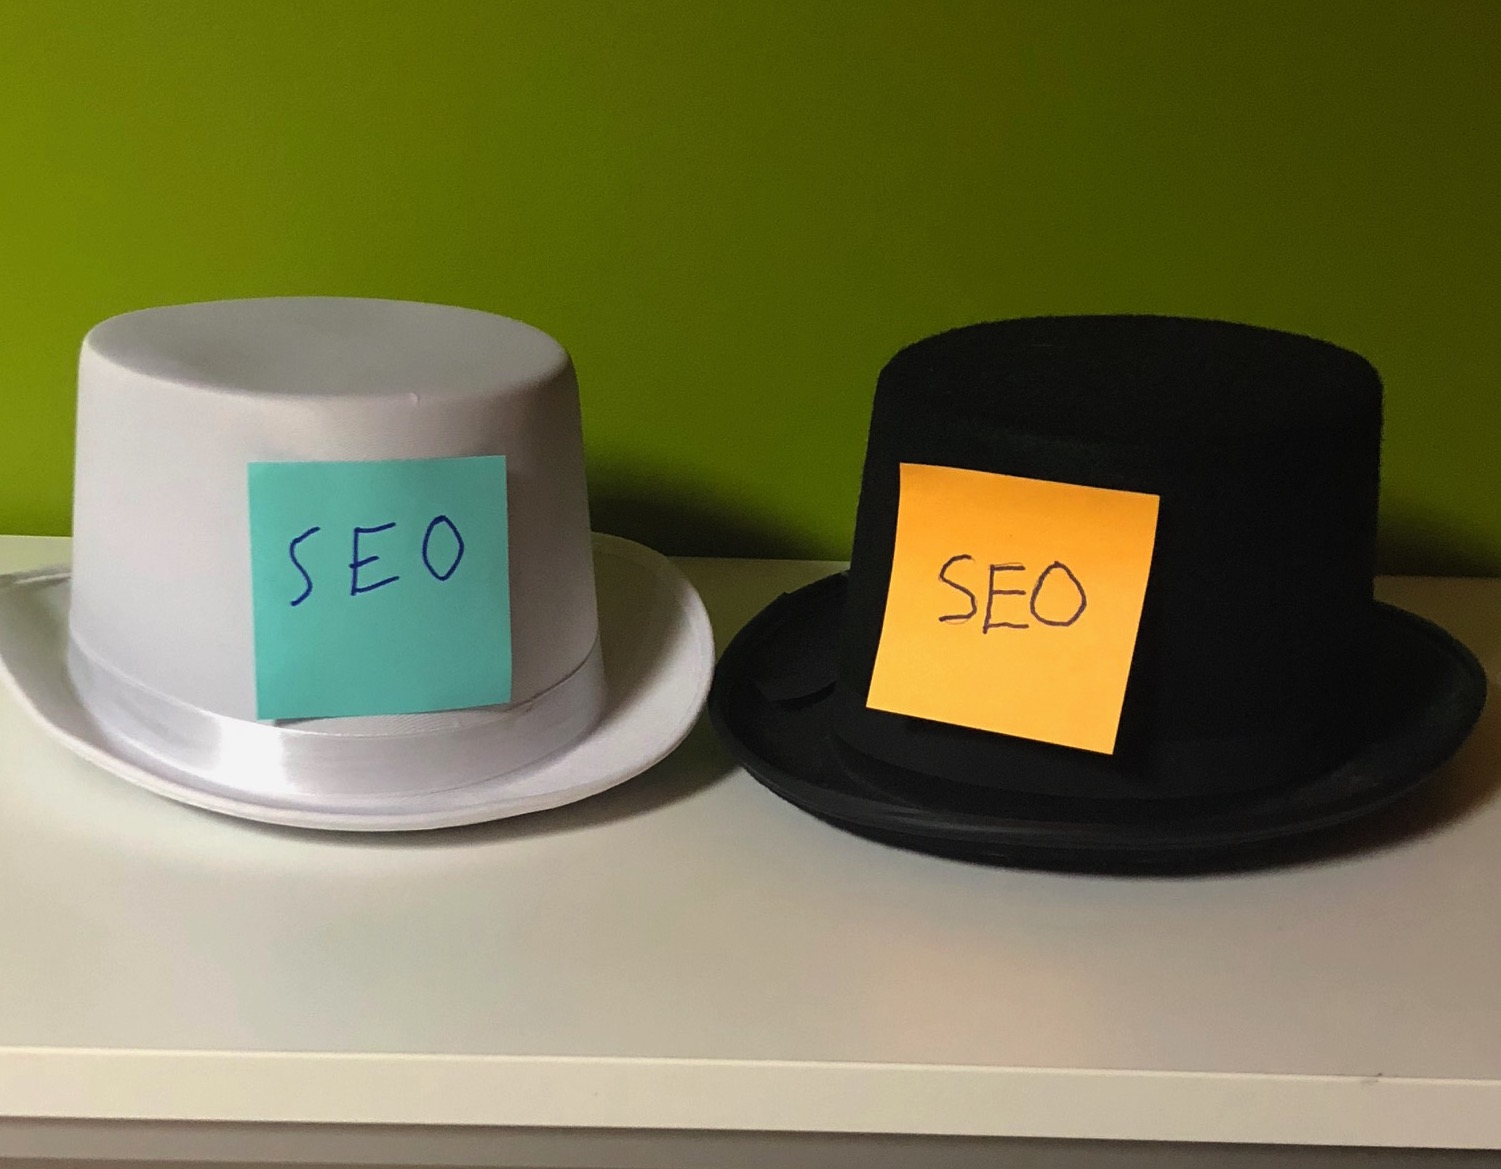 White Hat vs Black Hat SEO: Which Will You Wear?